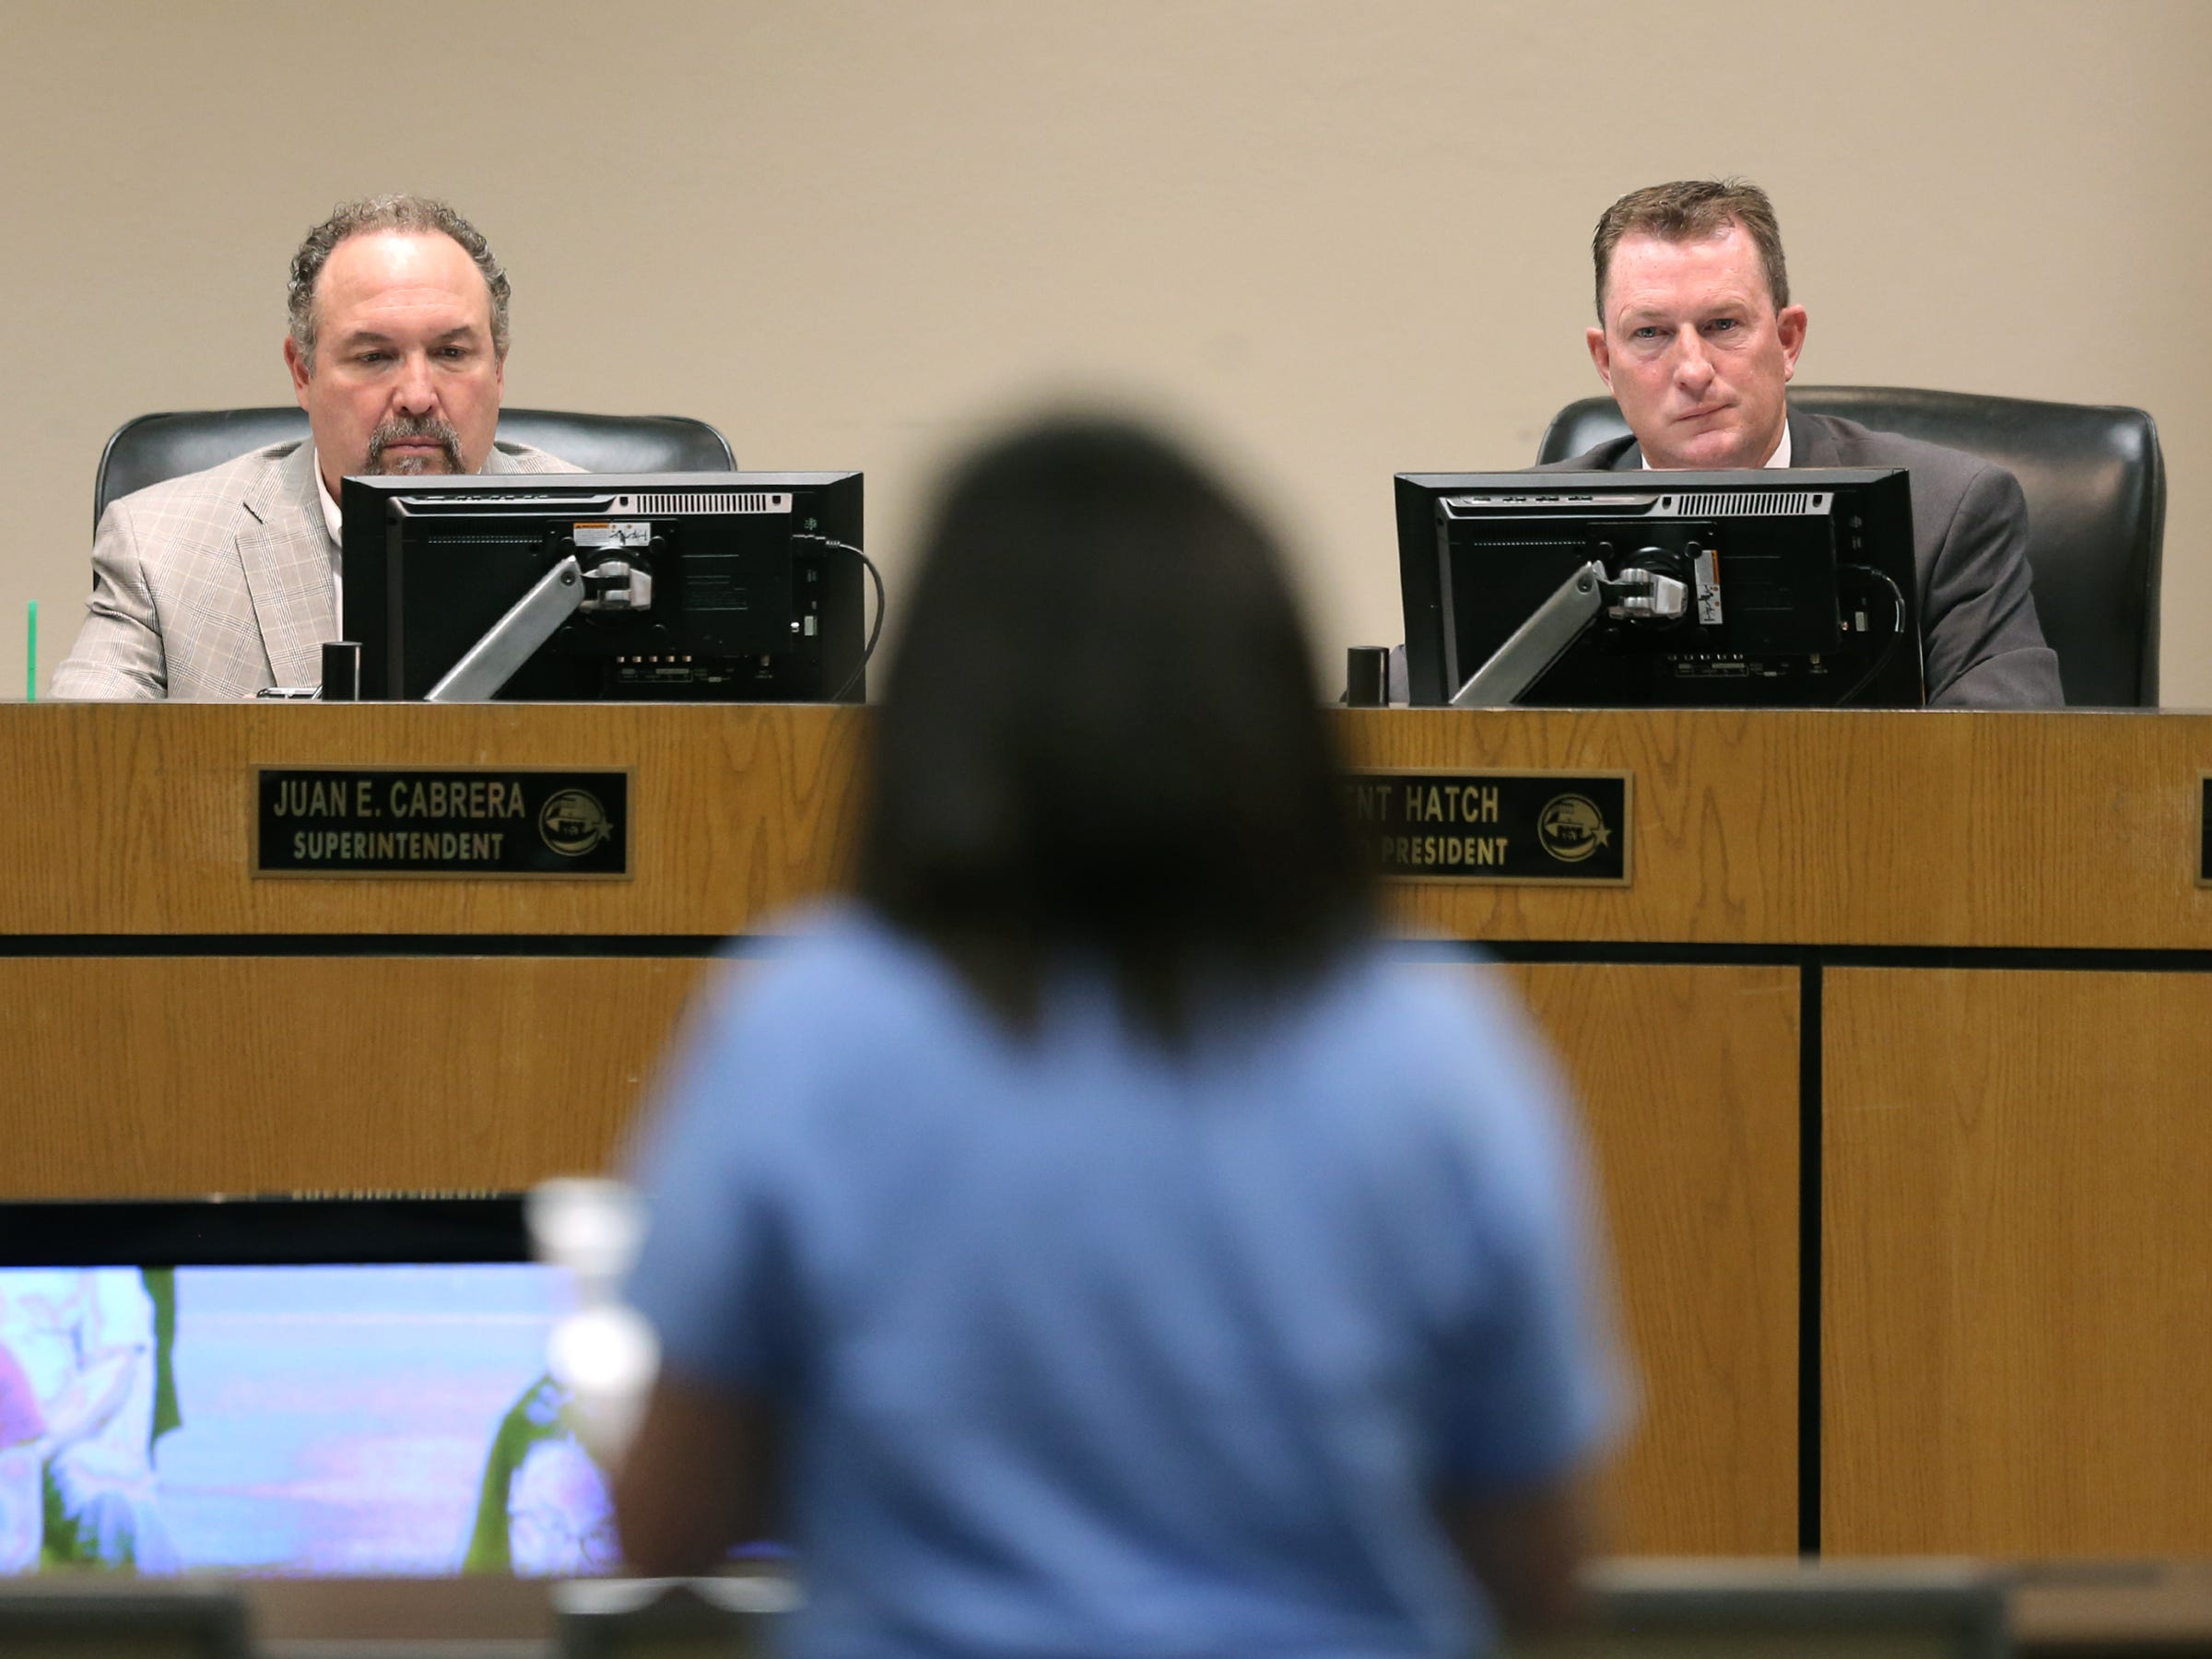 EPISD to hire additional oversight of firm managing 2016 $668.7 million bond | El Paso Times